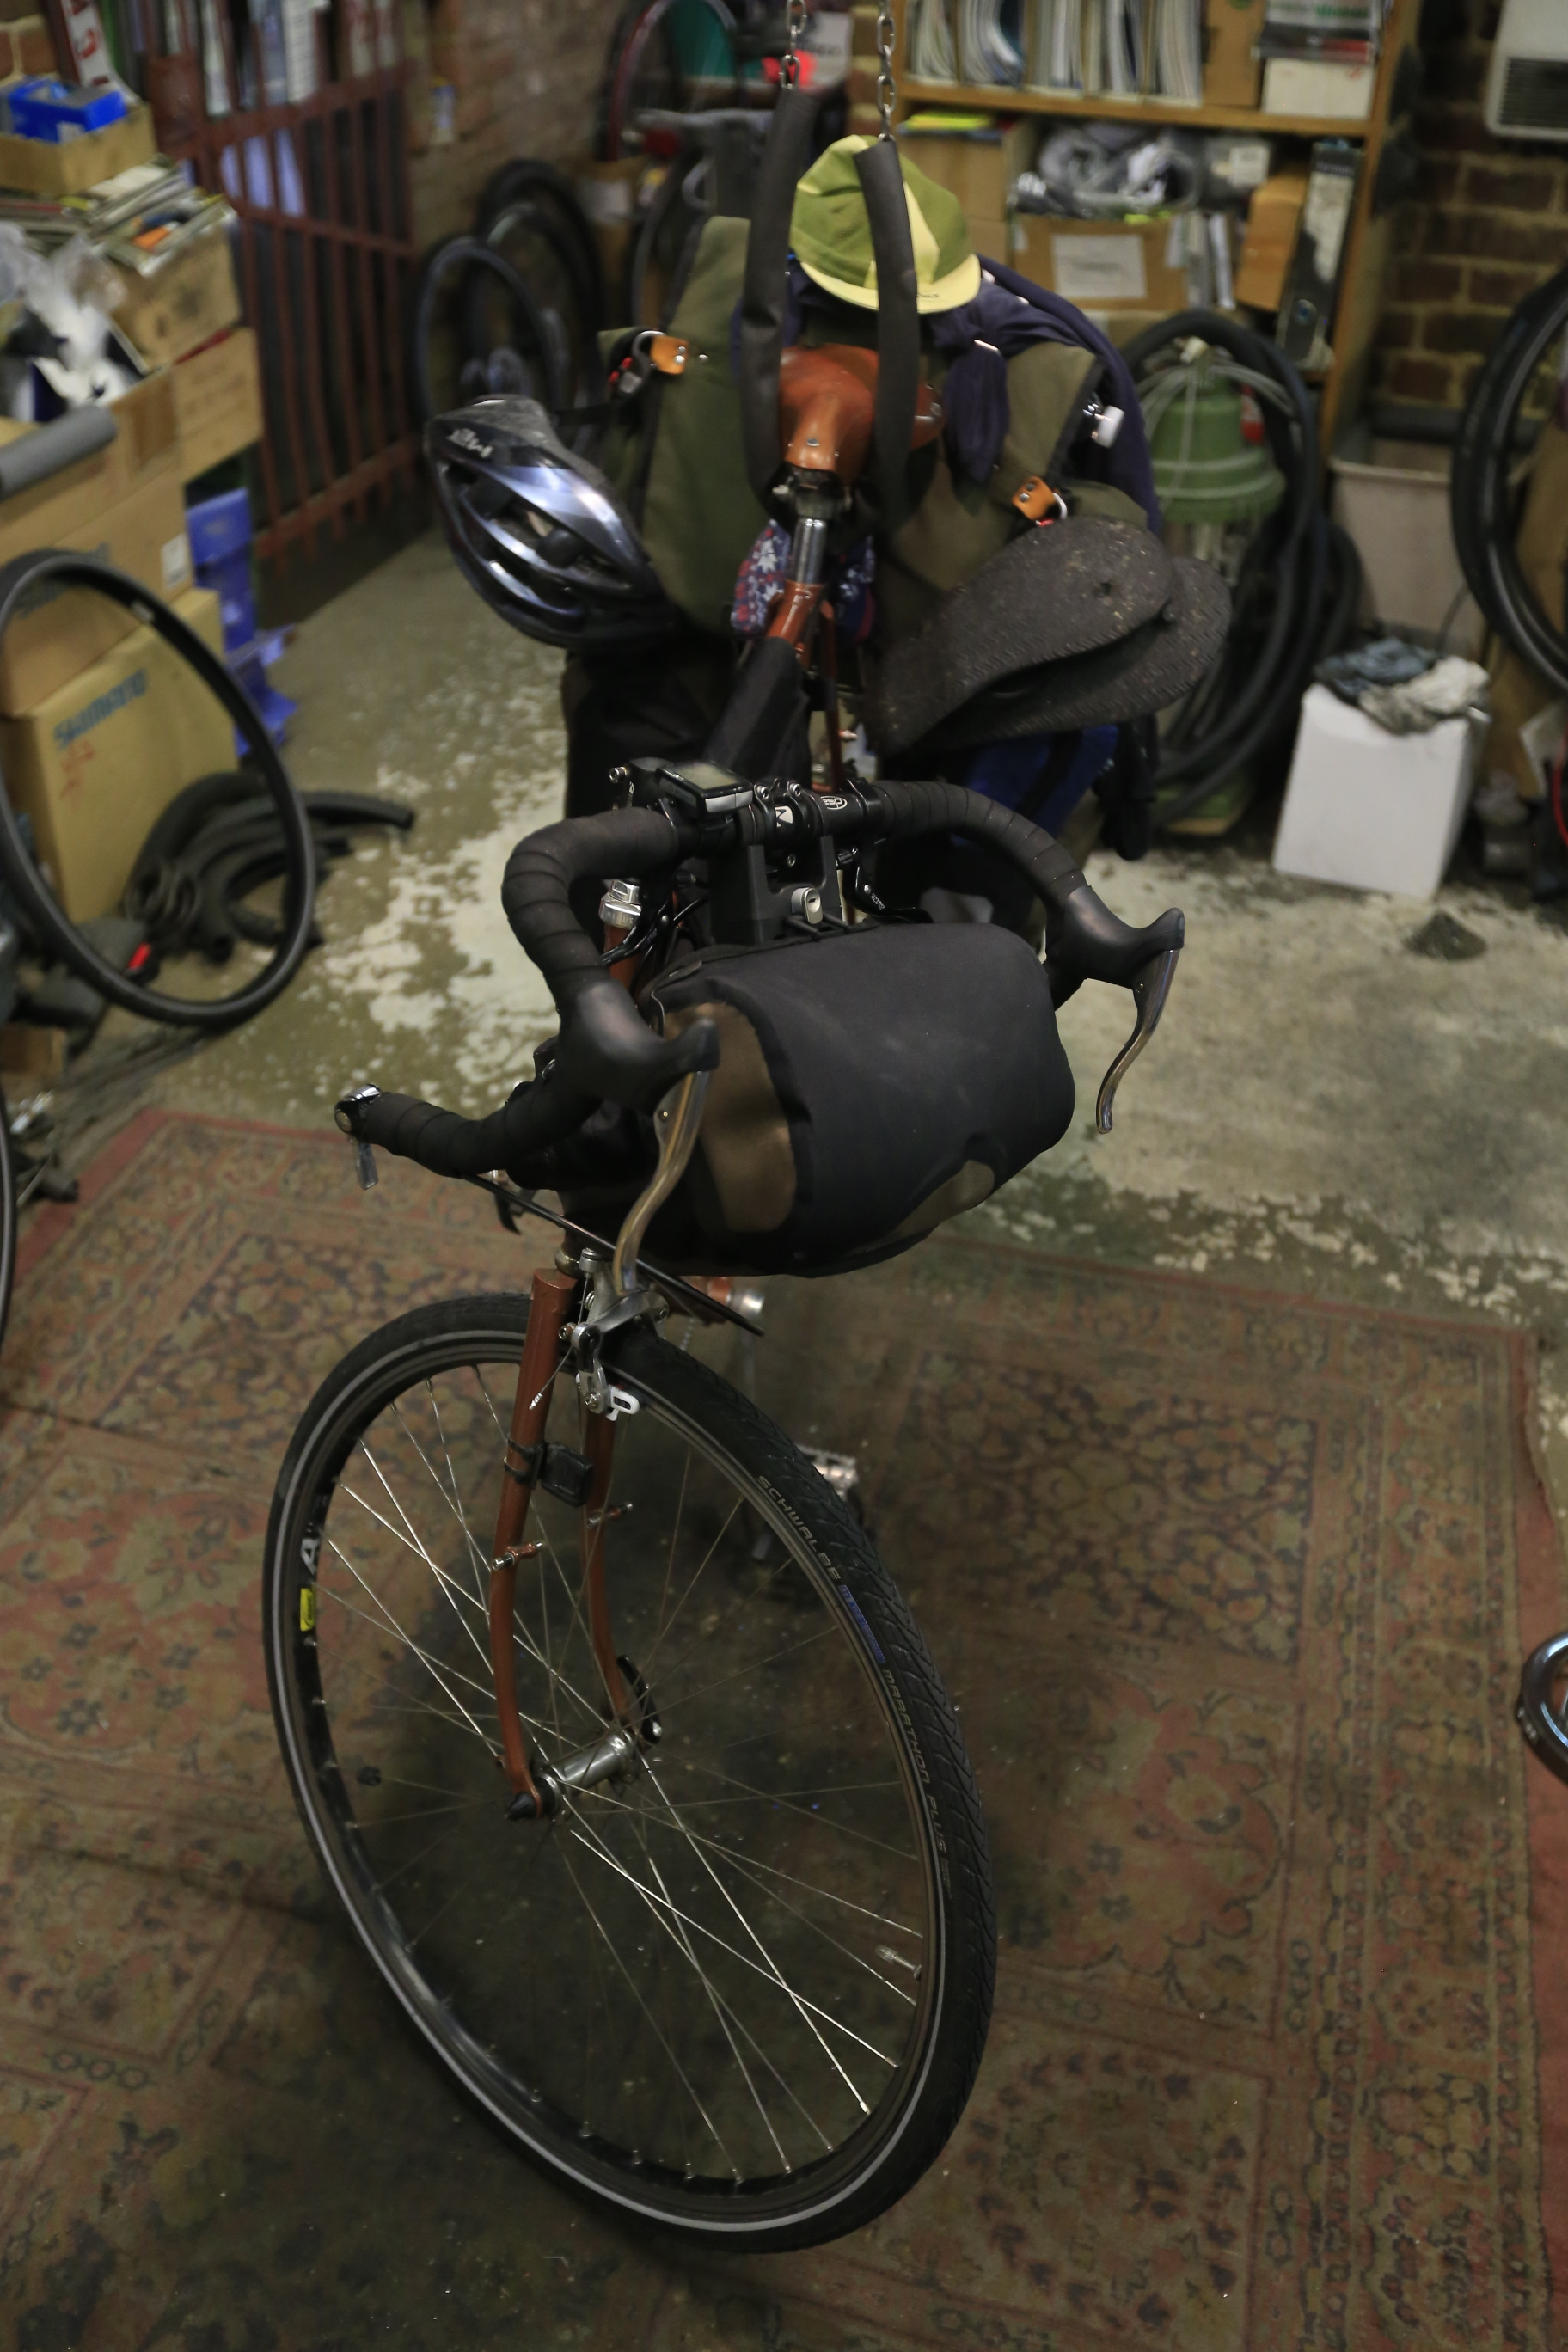 bicycle touring, bikepacking, photography blog, cycling store, bicycle store, cycling gear, surly, pannier, ortlieb, steel frame, lejog, Carradice, Brooks, fat bike, Garmin, bicycle touring apocalypse, Schwalbe, Mavic, Tubus,